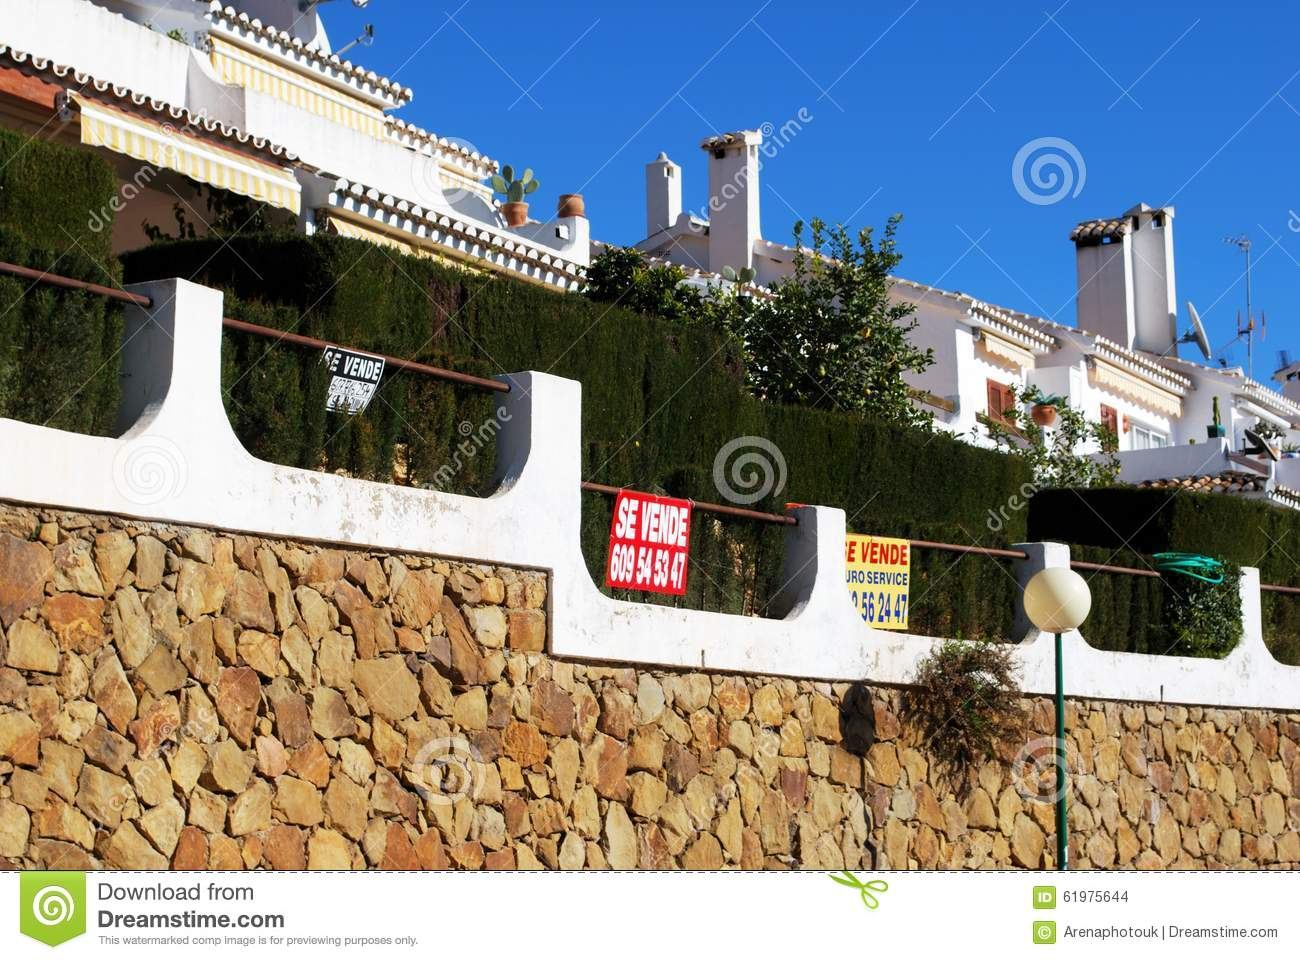 Apartments For Sale, Spain. Editorial Stock Image - Image ...